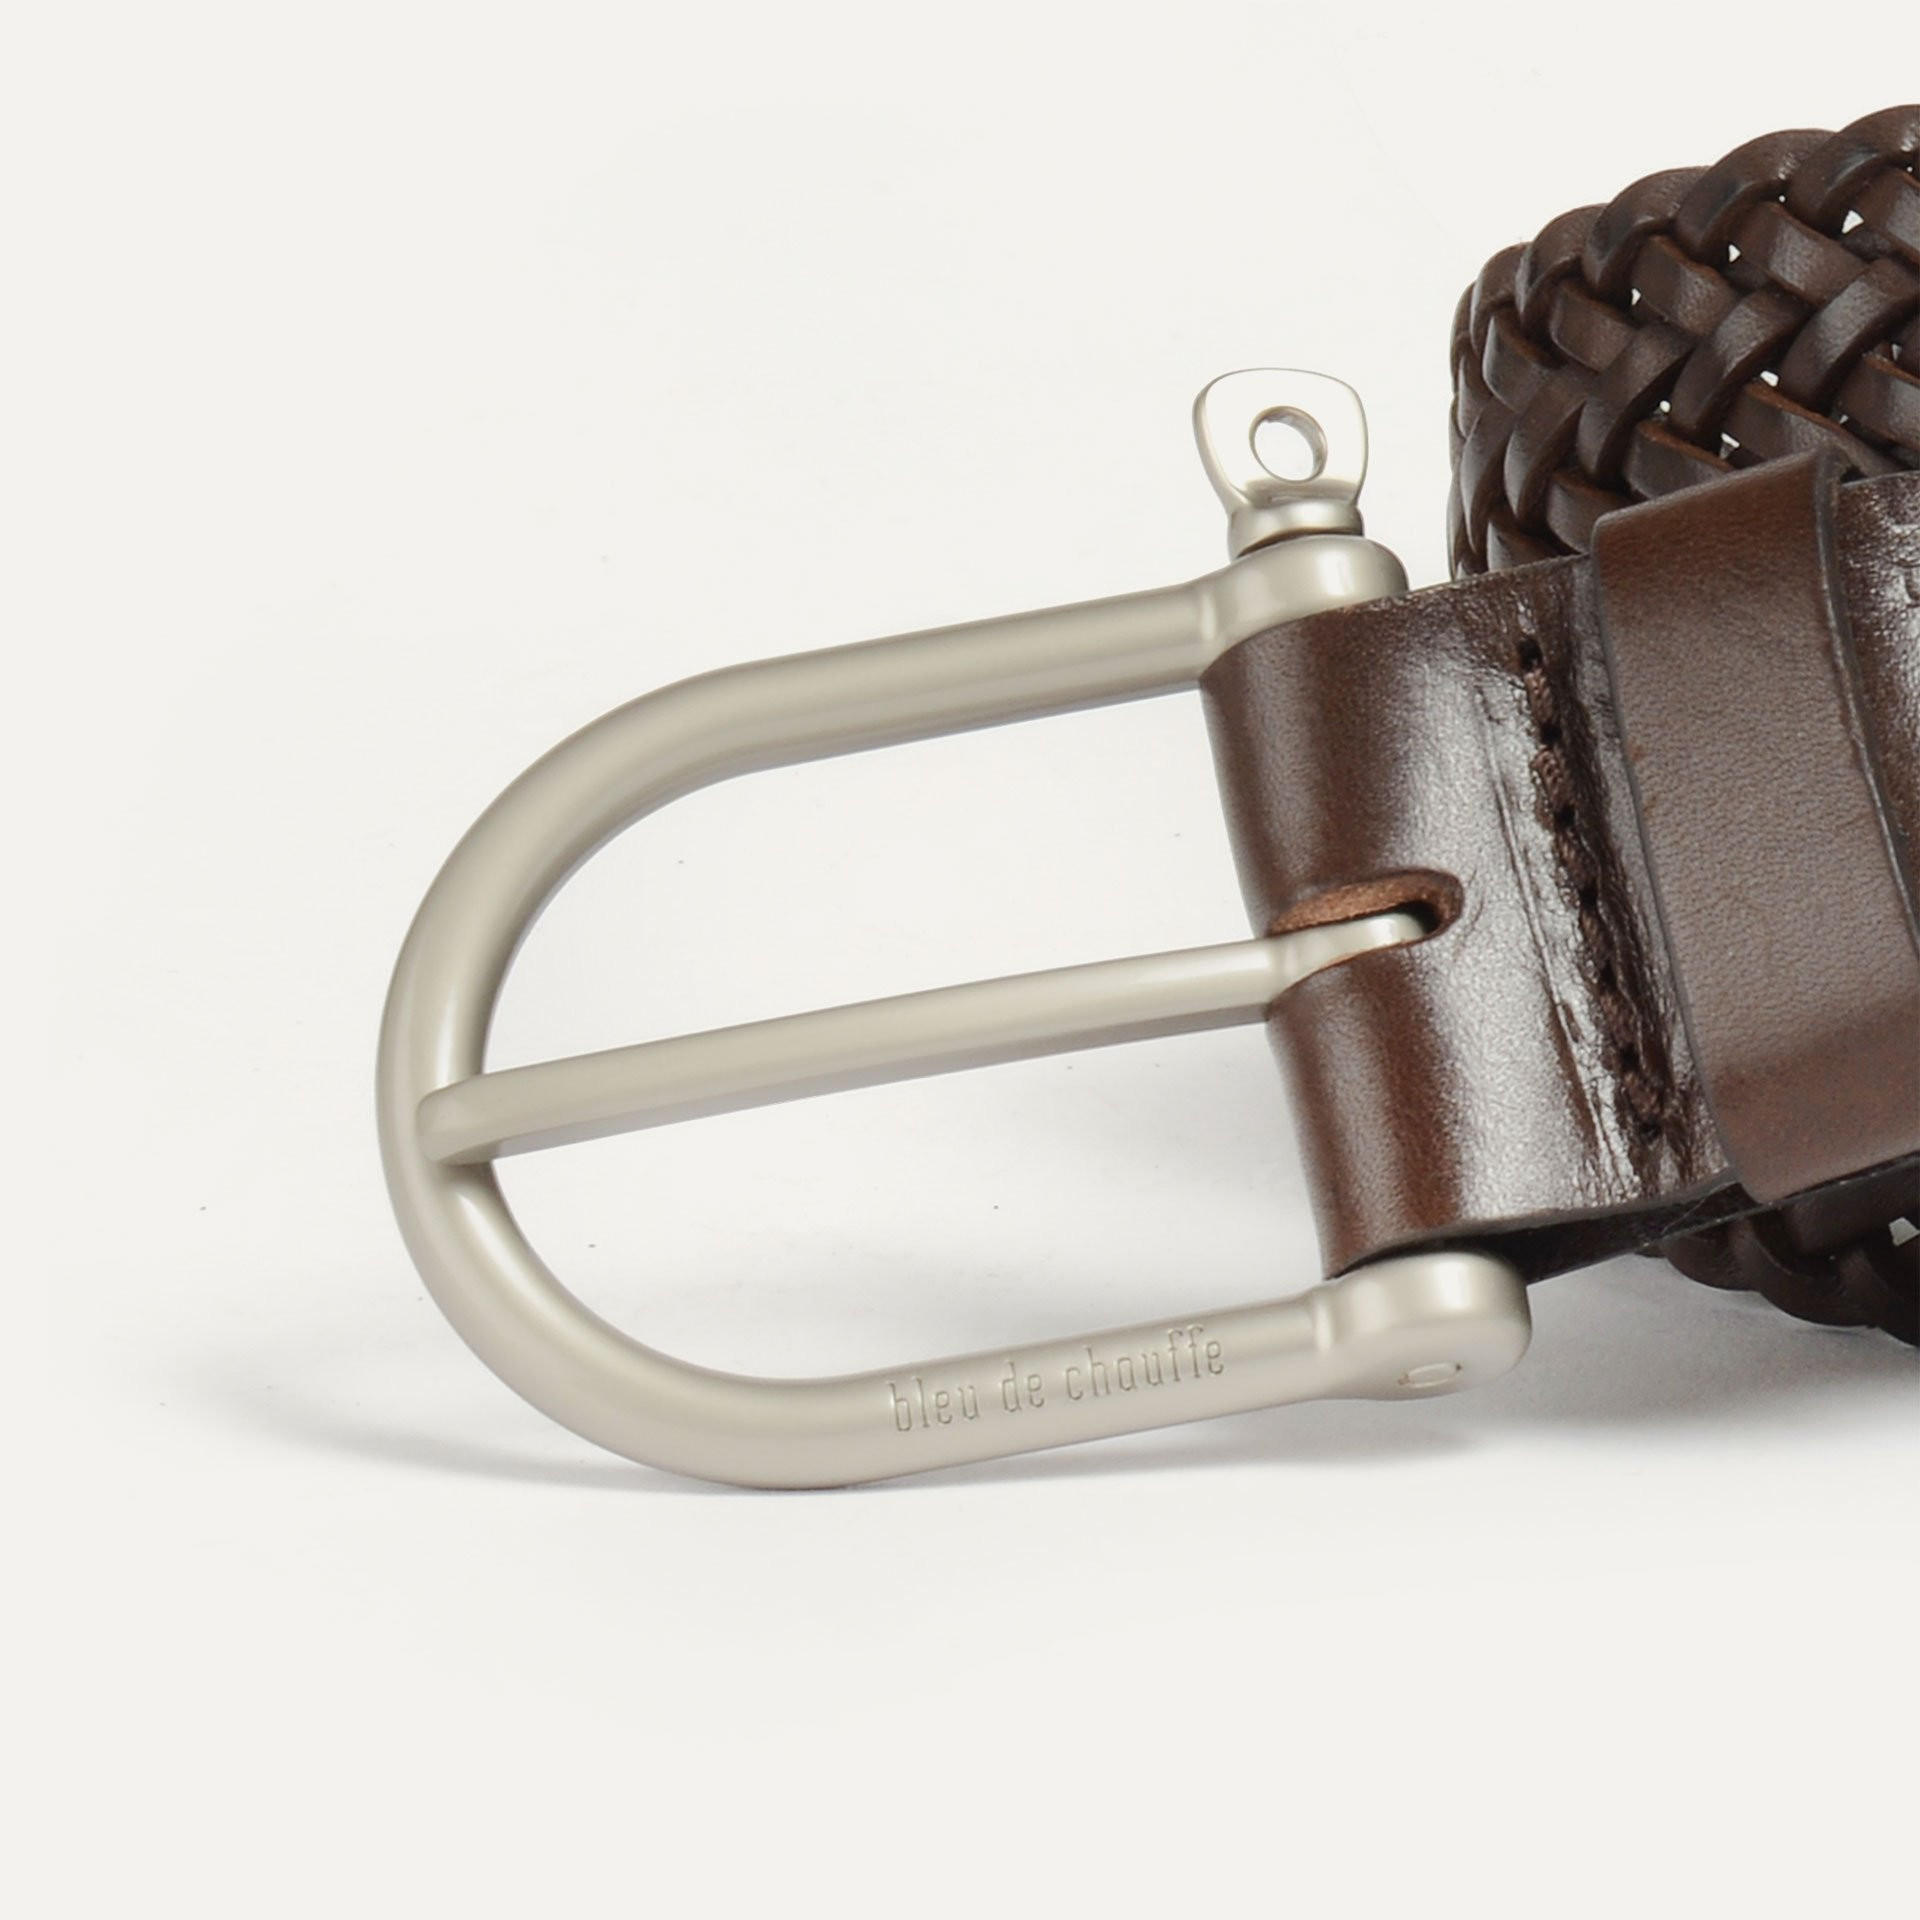 Manille Belt / braided leather - Expresso (image n°2)